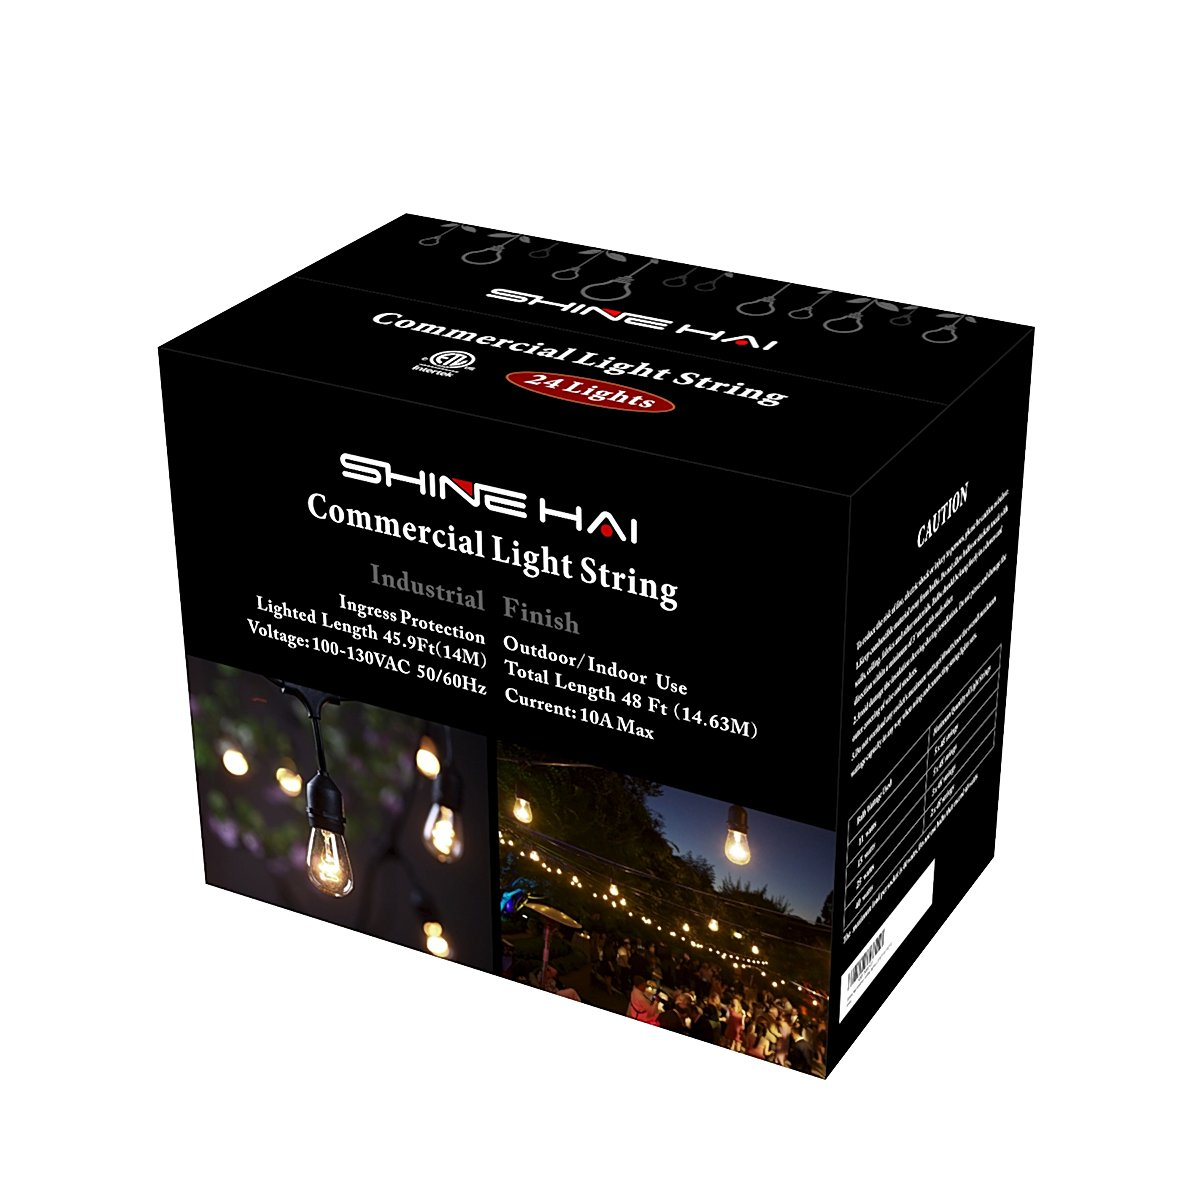 SHINE HAI Outdoor String Lights With 24 Dropped Sockets (26 Bulbs Included) Weatherproof Commercial Grade String Lights Perfect for Patio Lights Party Lights & More, 48 FT String 5